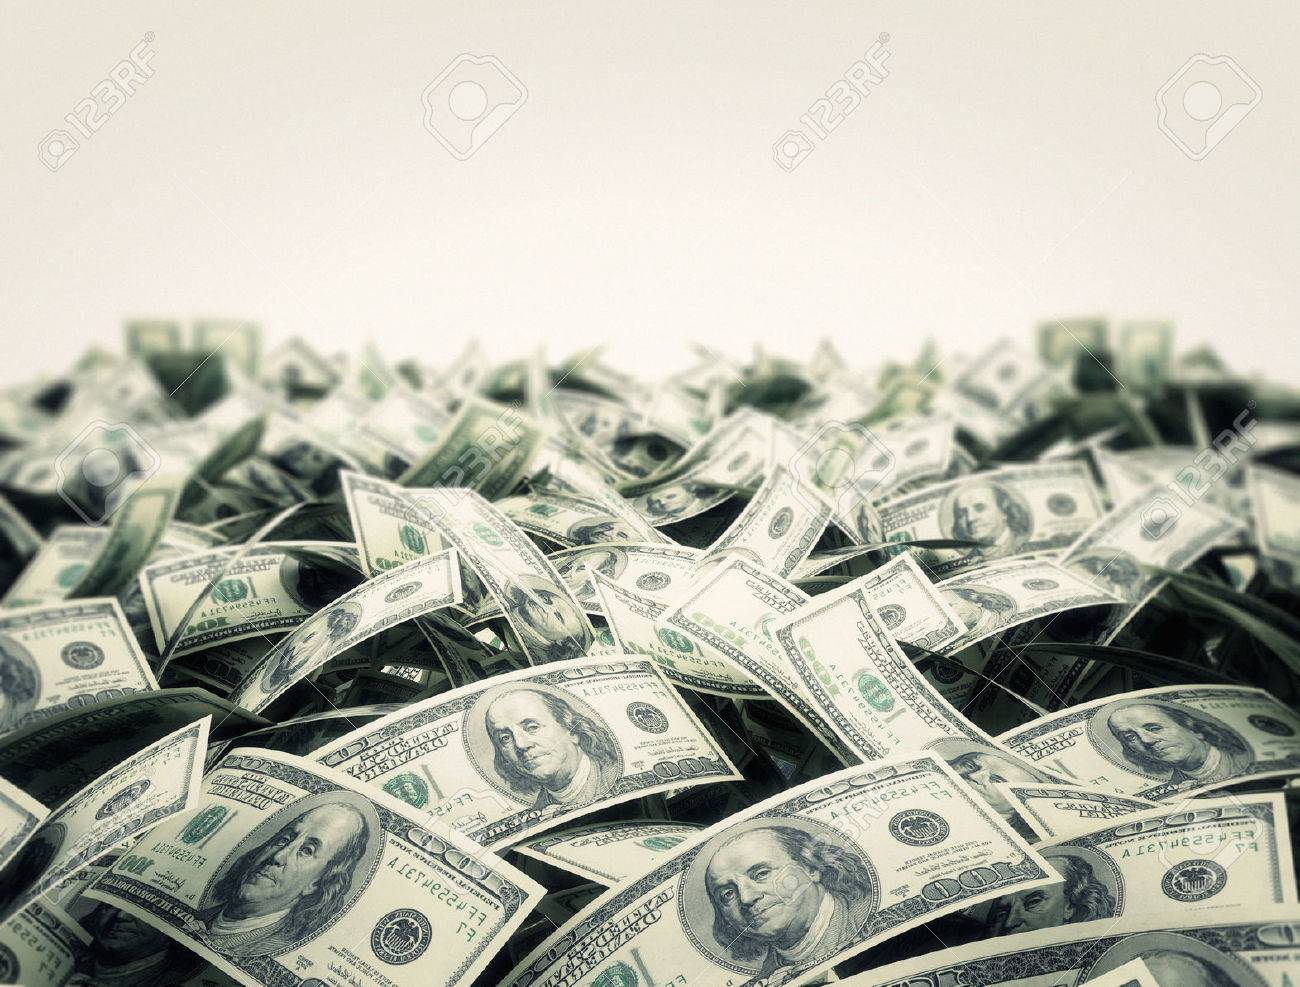 Money background with white copy space area - 54898565